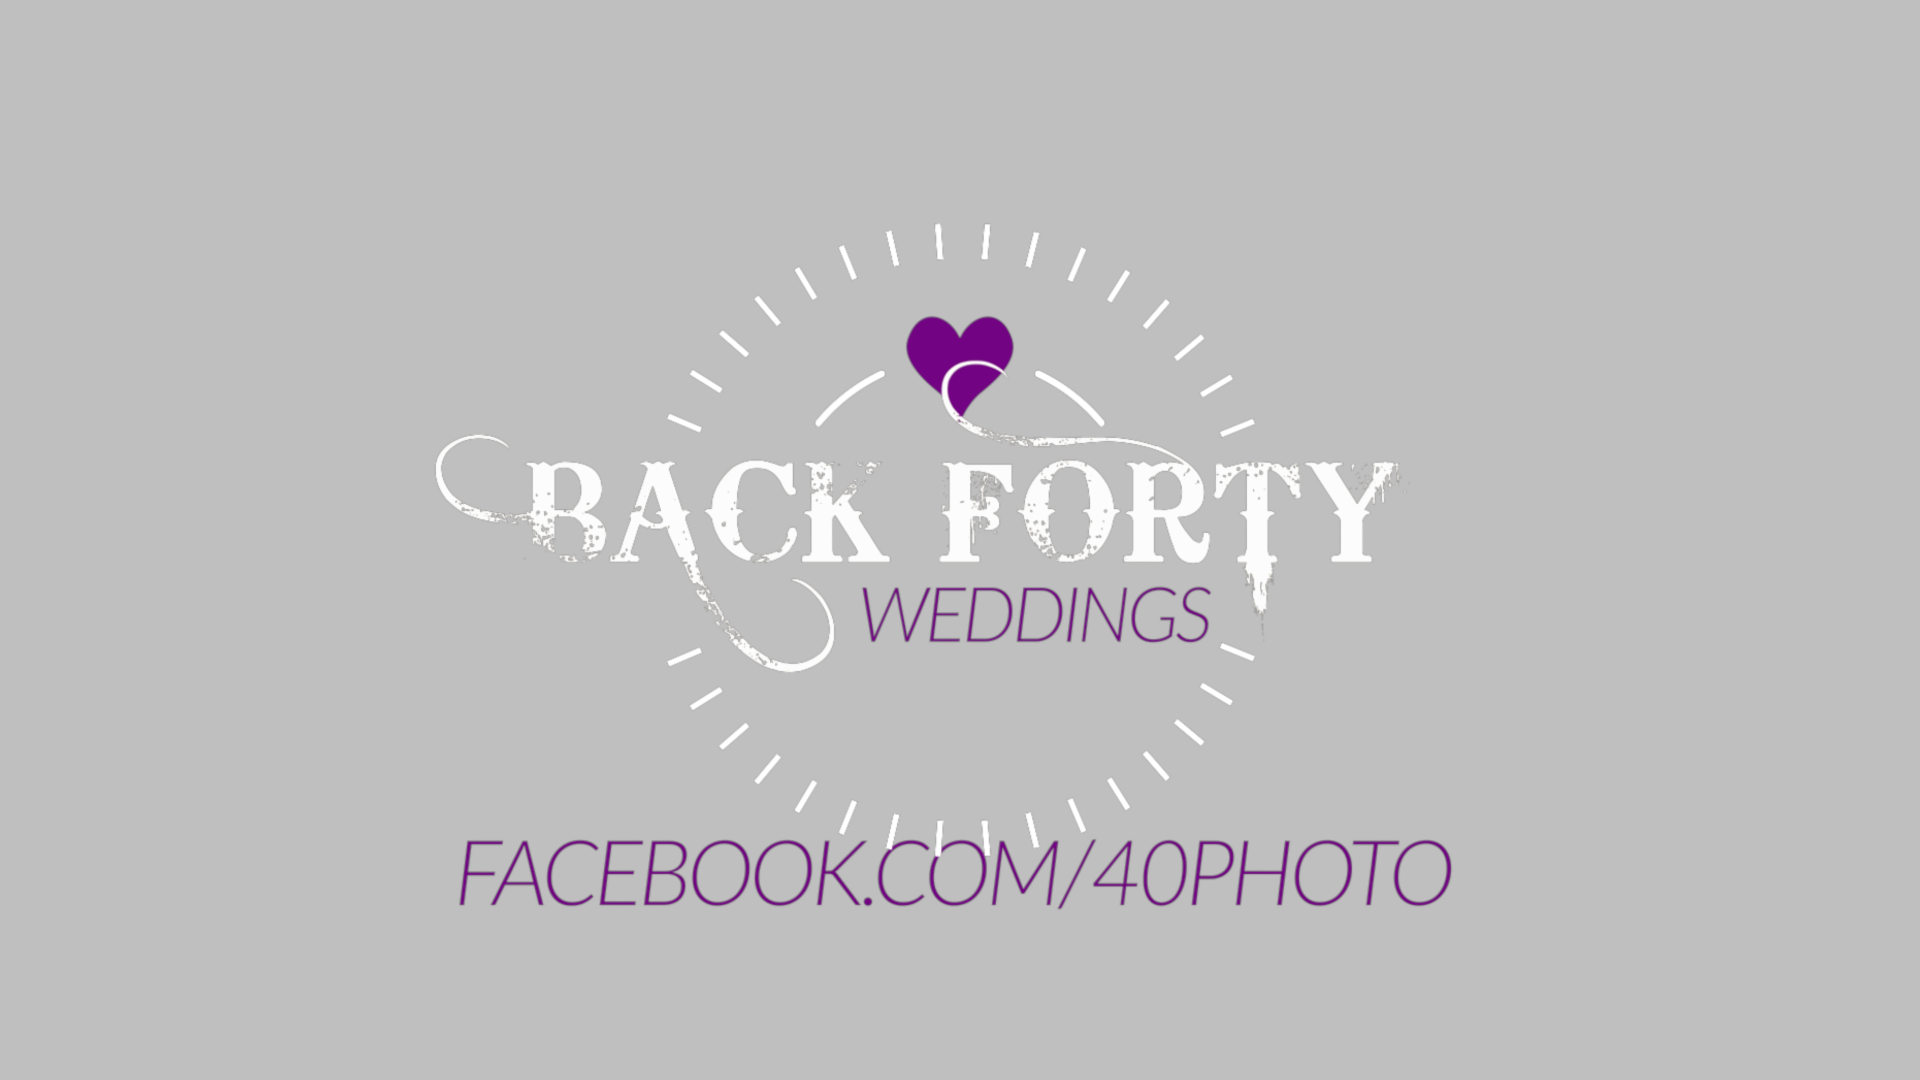 Back Forty Wedding Videography